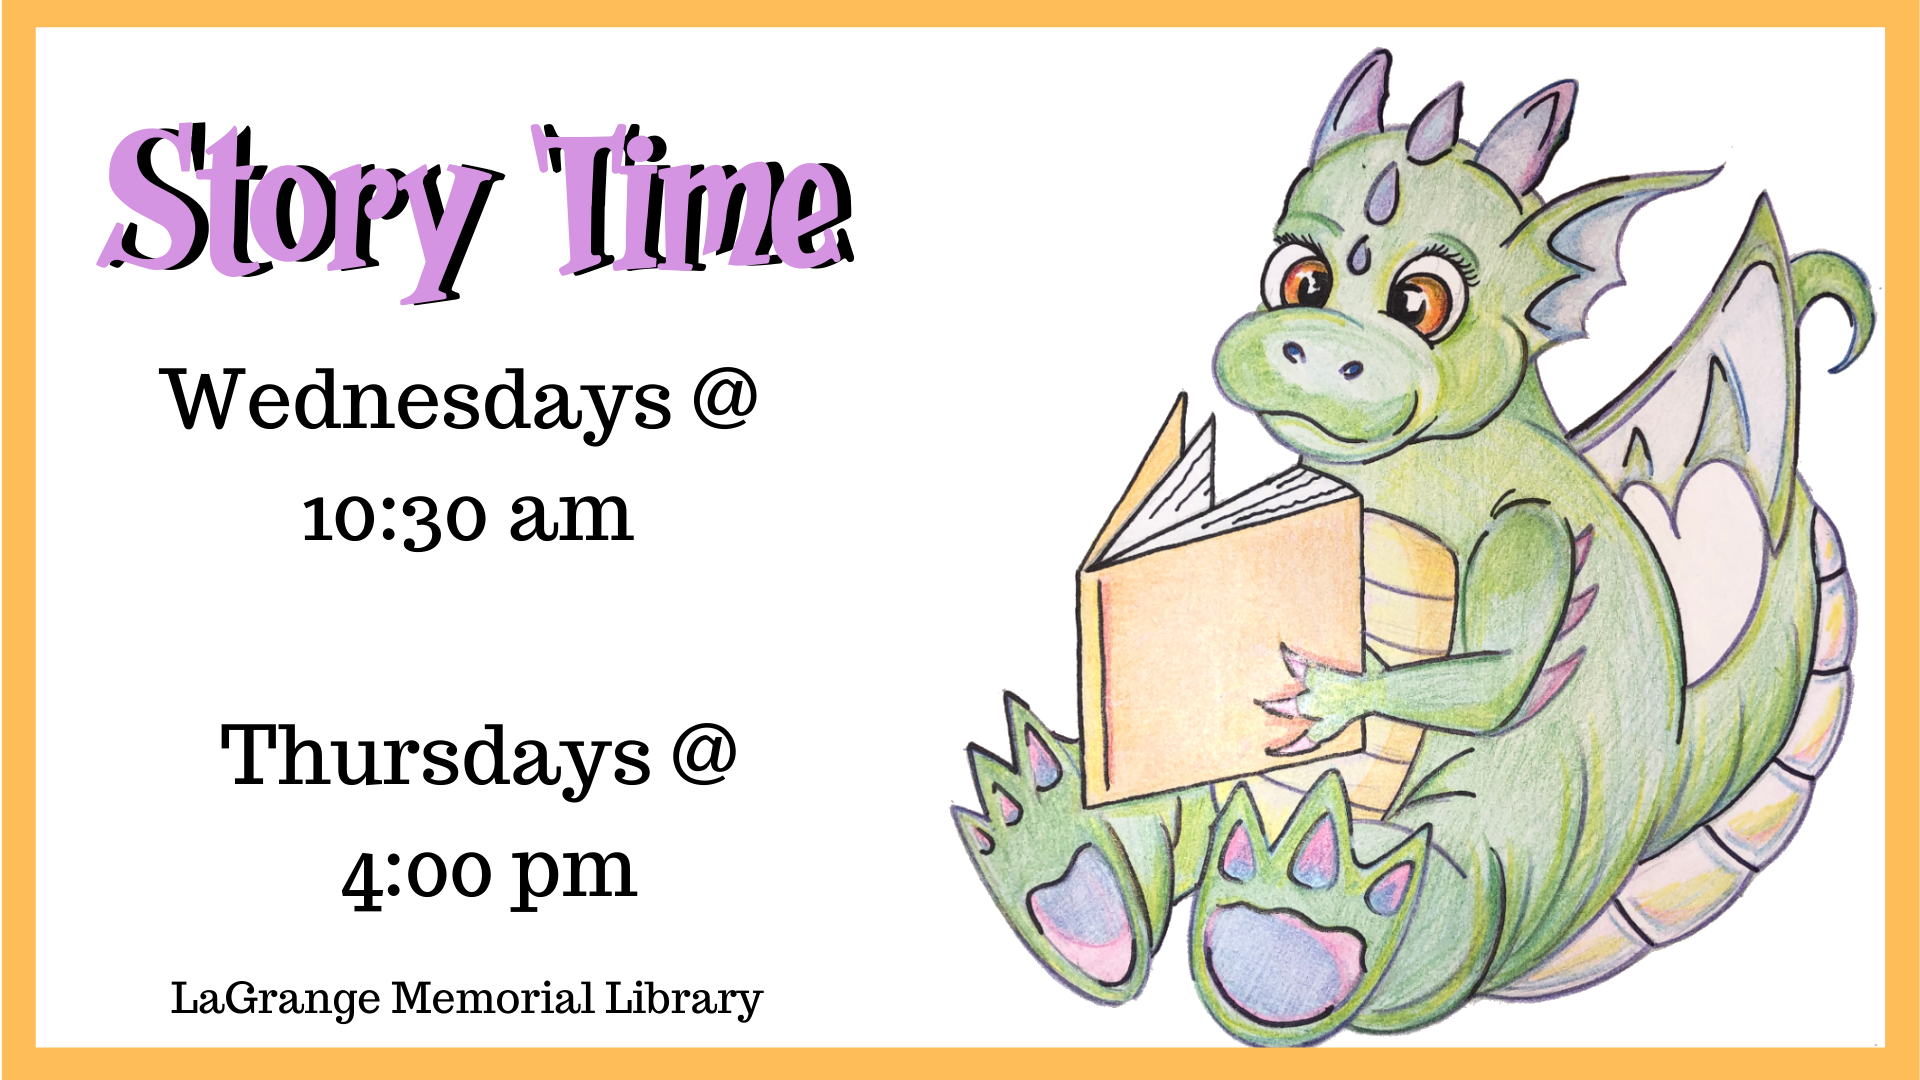 Story Time at LaGrange Memorial Library